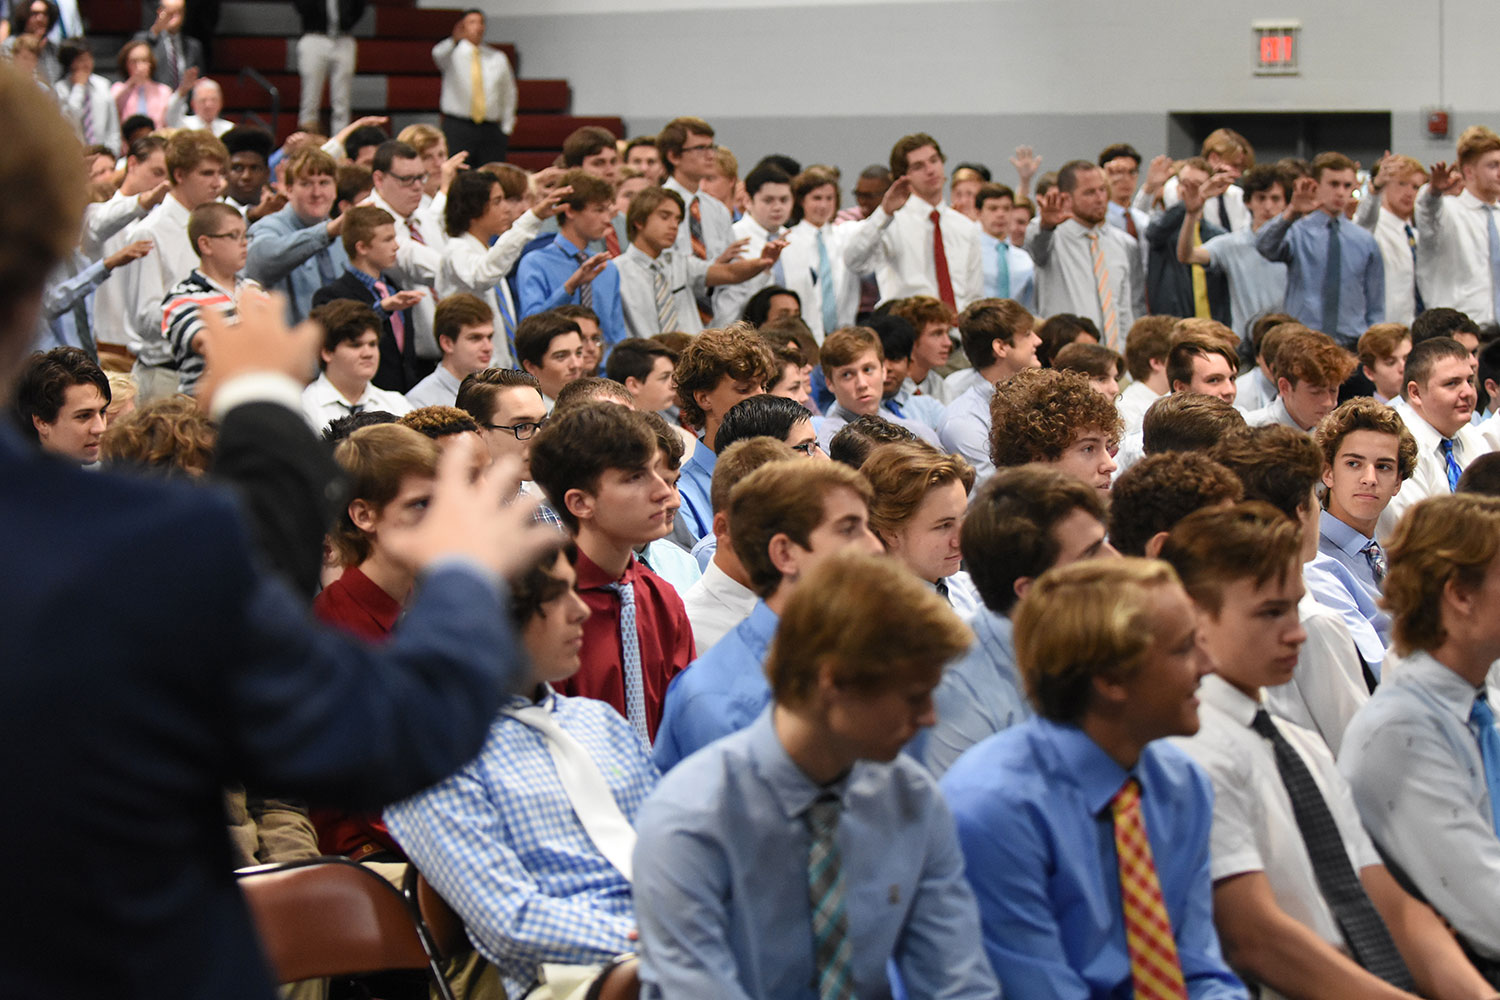 The school blesses juniors during the missioning mass before they leave for their projects.